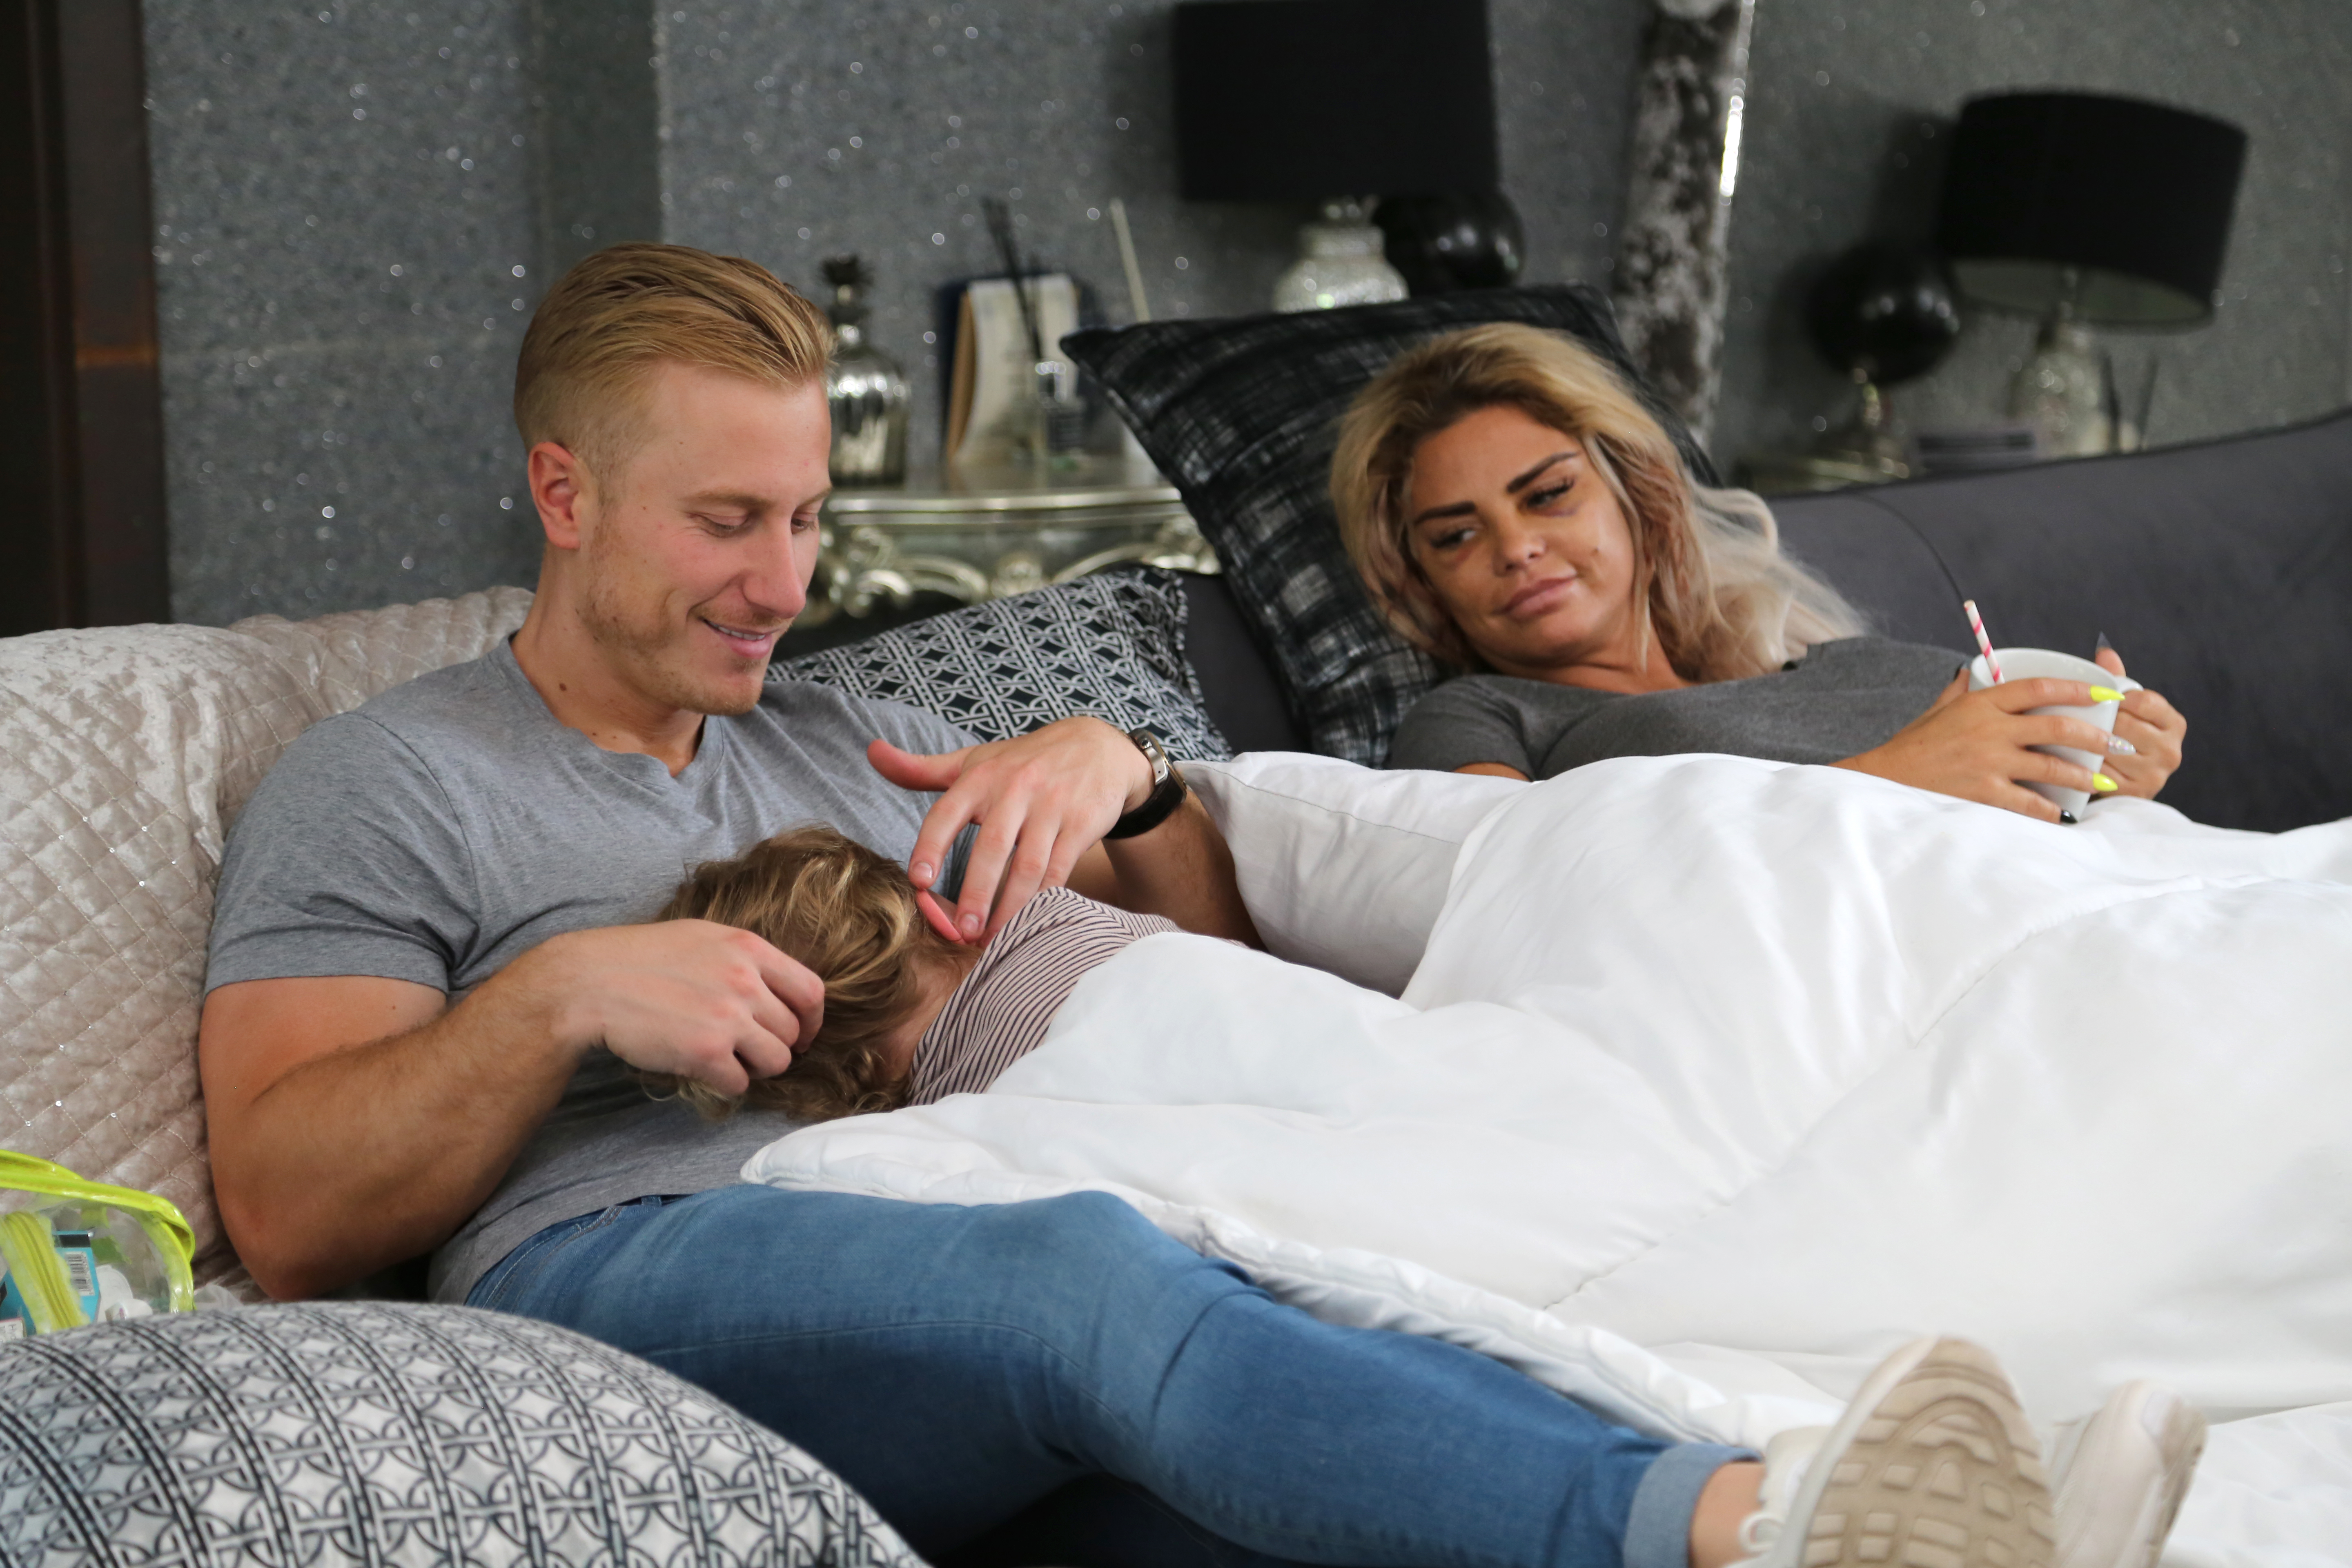 Katie Price is looked after by boyfriend Kris as she recovers from surgery (Credit: Quest Red)